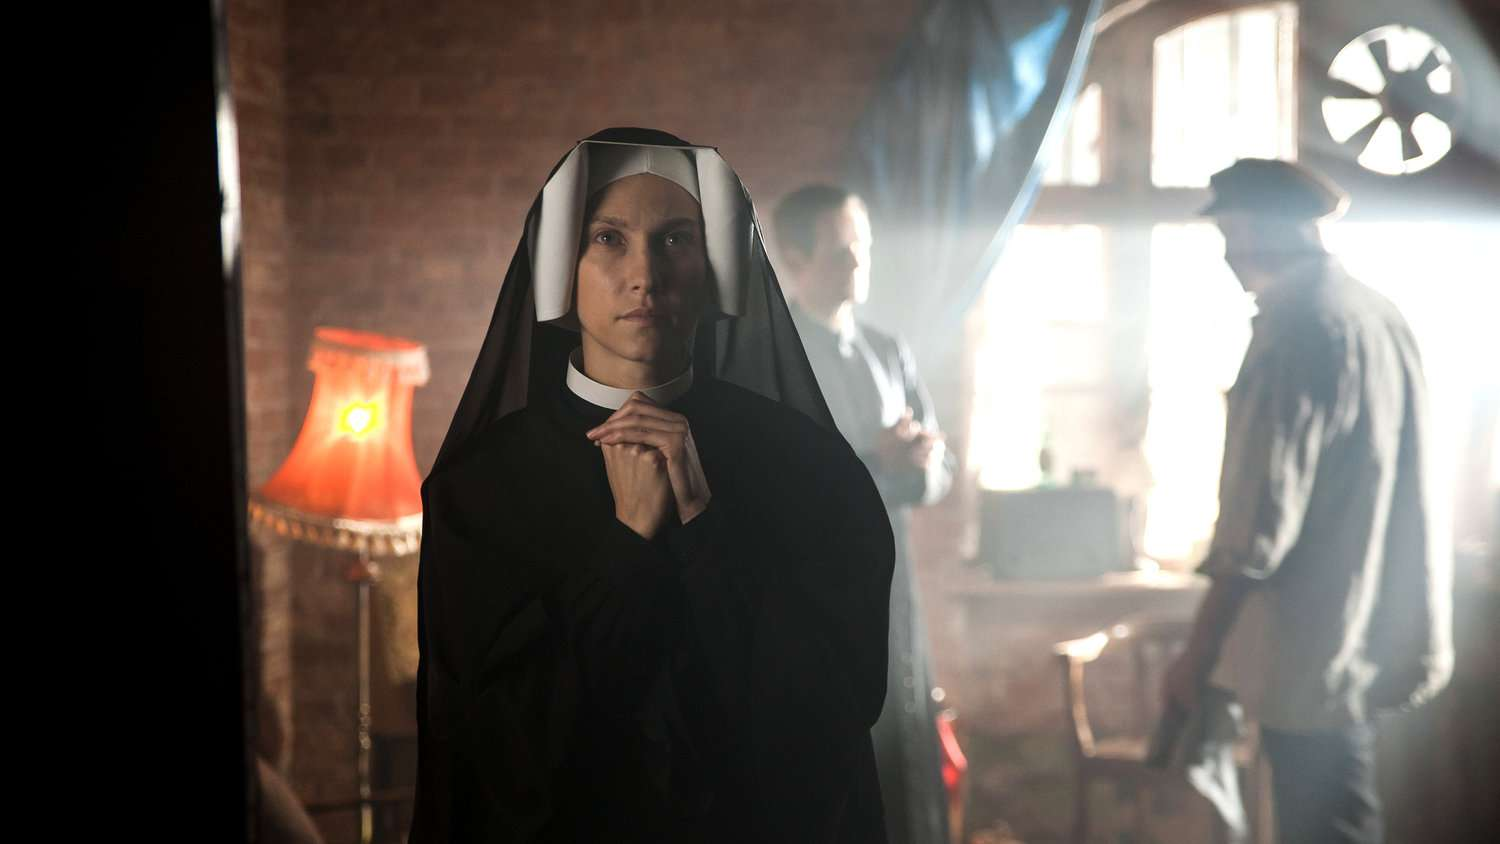 St. Faustina Film Hits Theaters Oct. 28 for One Day Only